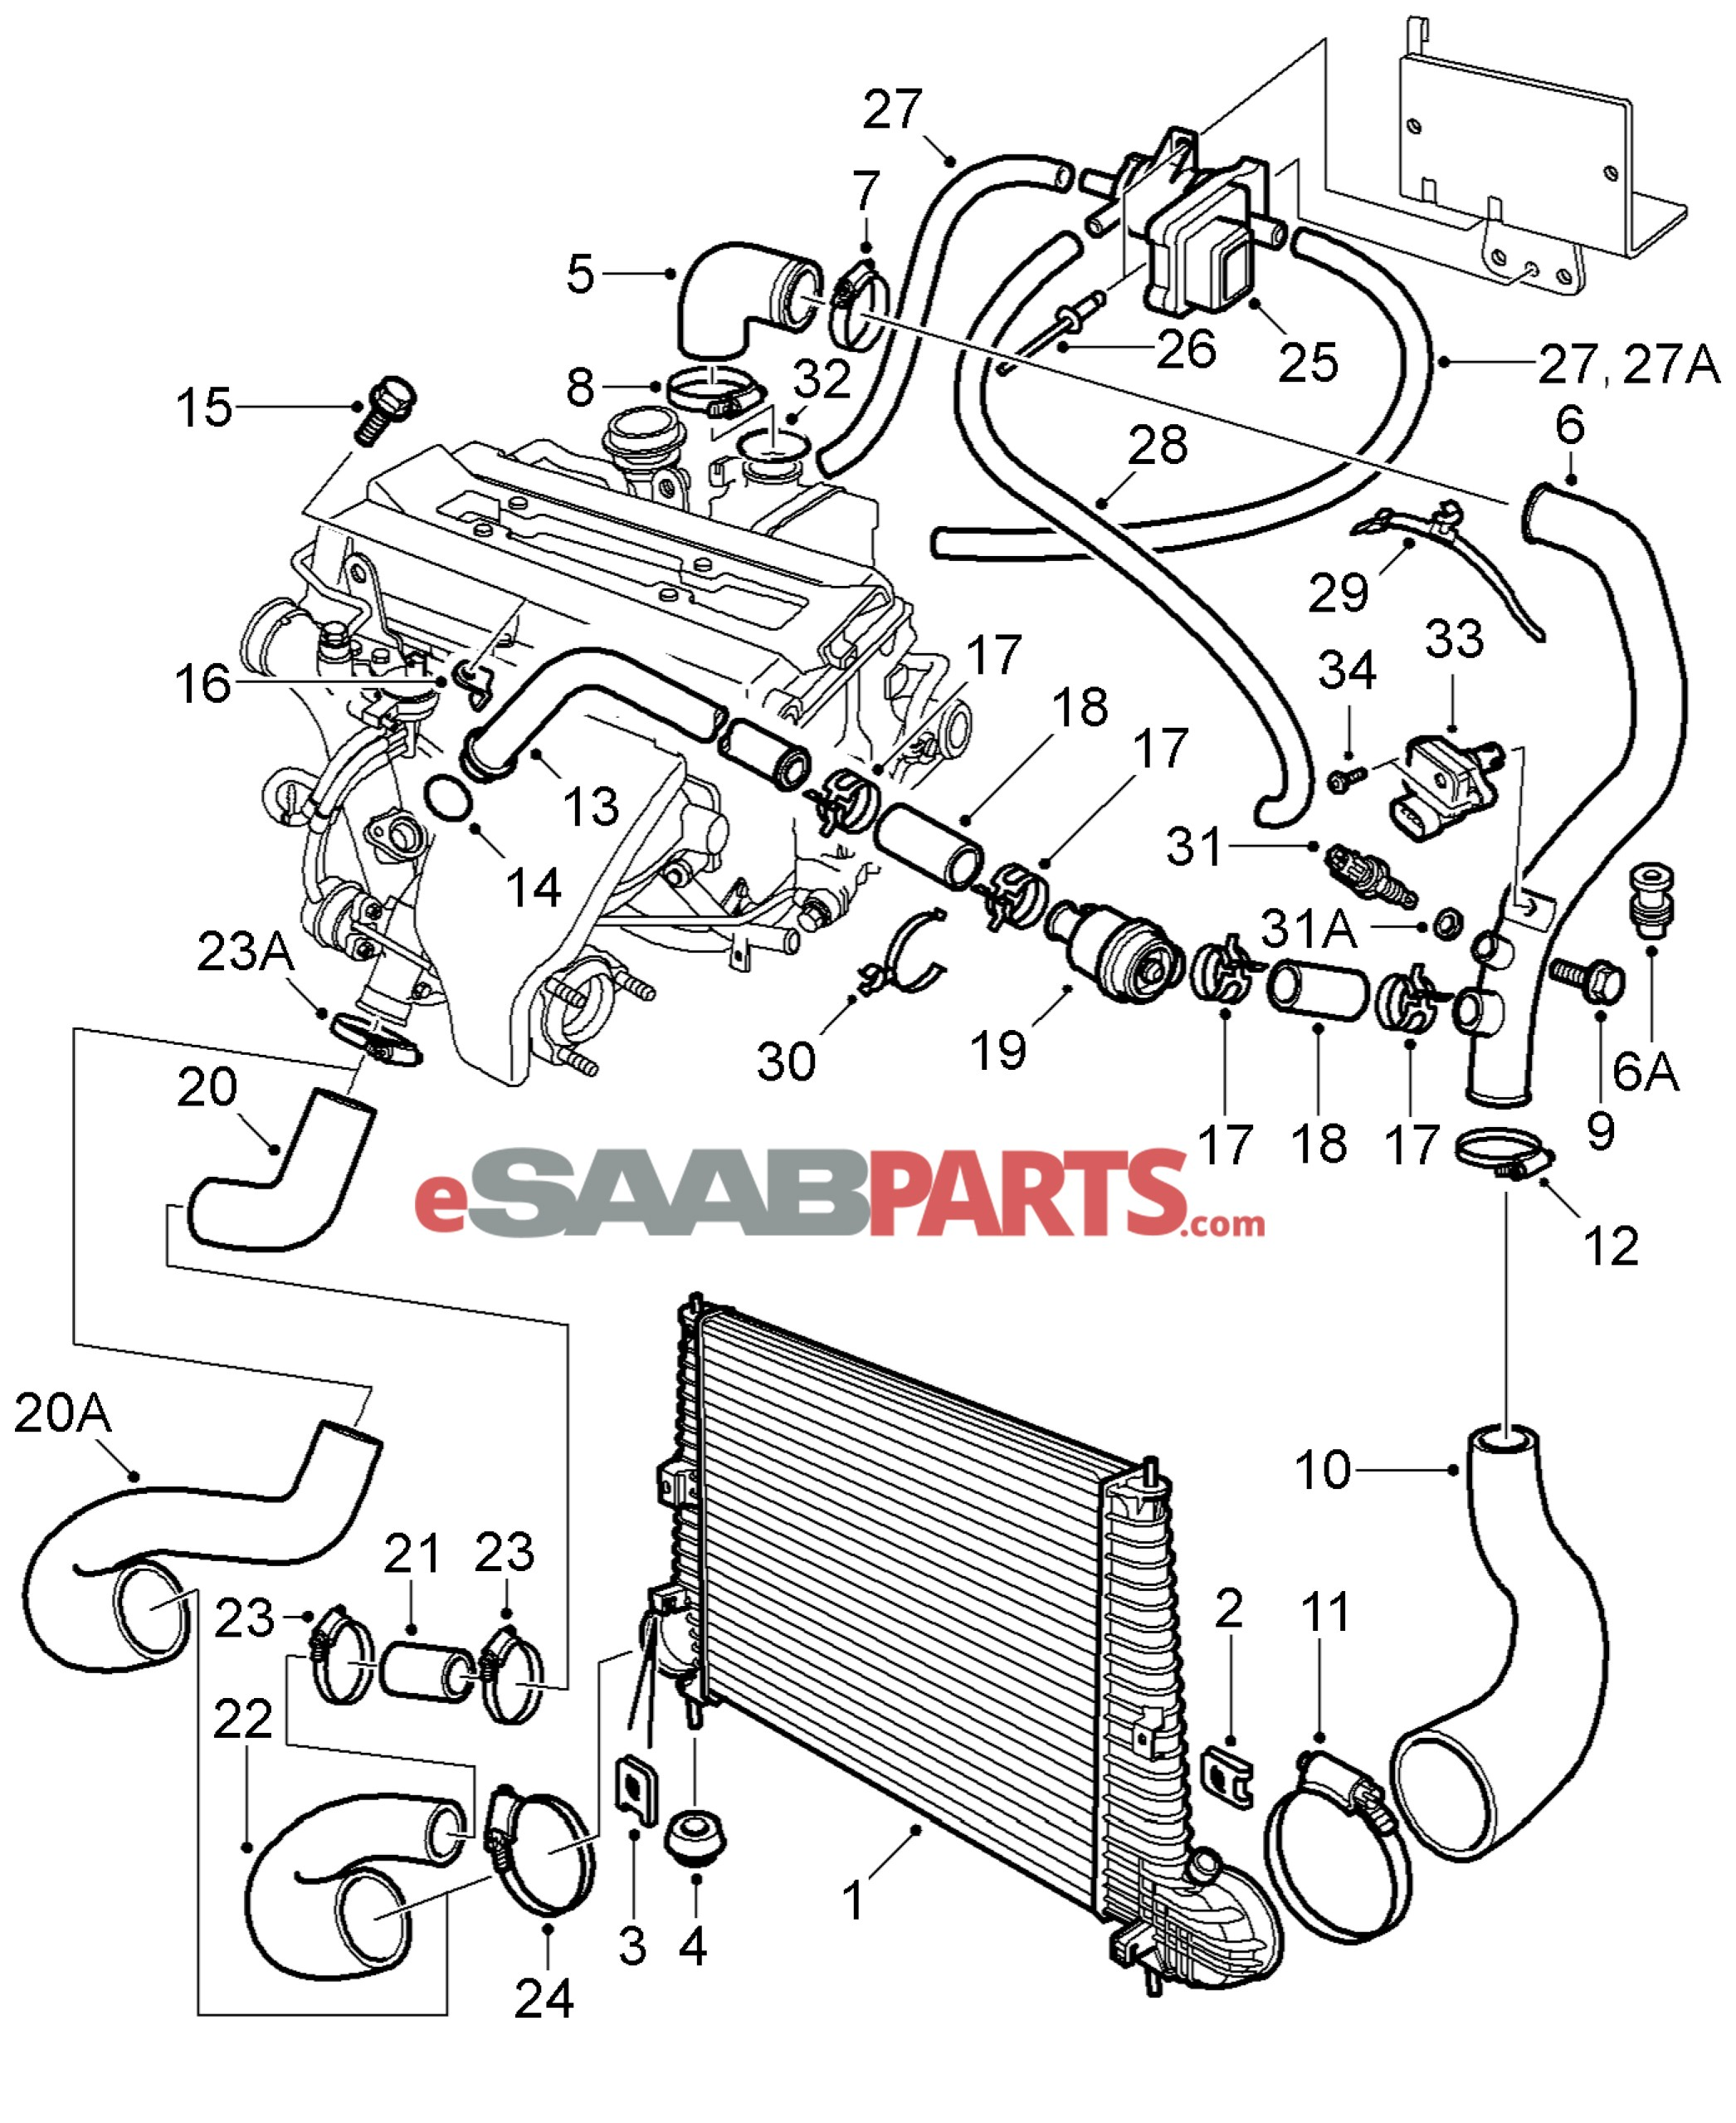 Saab 9 3 engine diagram 2001 saab 9 5 wiring diagram saab wiring rh detoxicrecenze 2001 saab 9 5 radio wiring diagram hid light wiring diagram